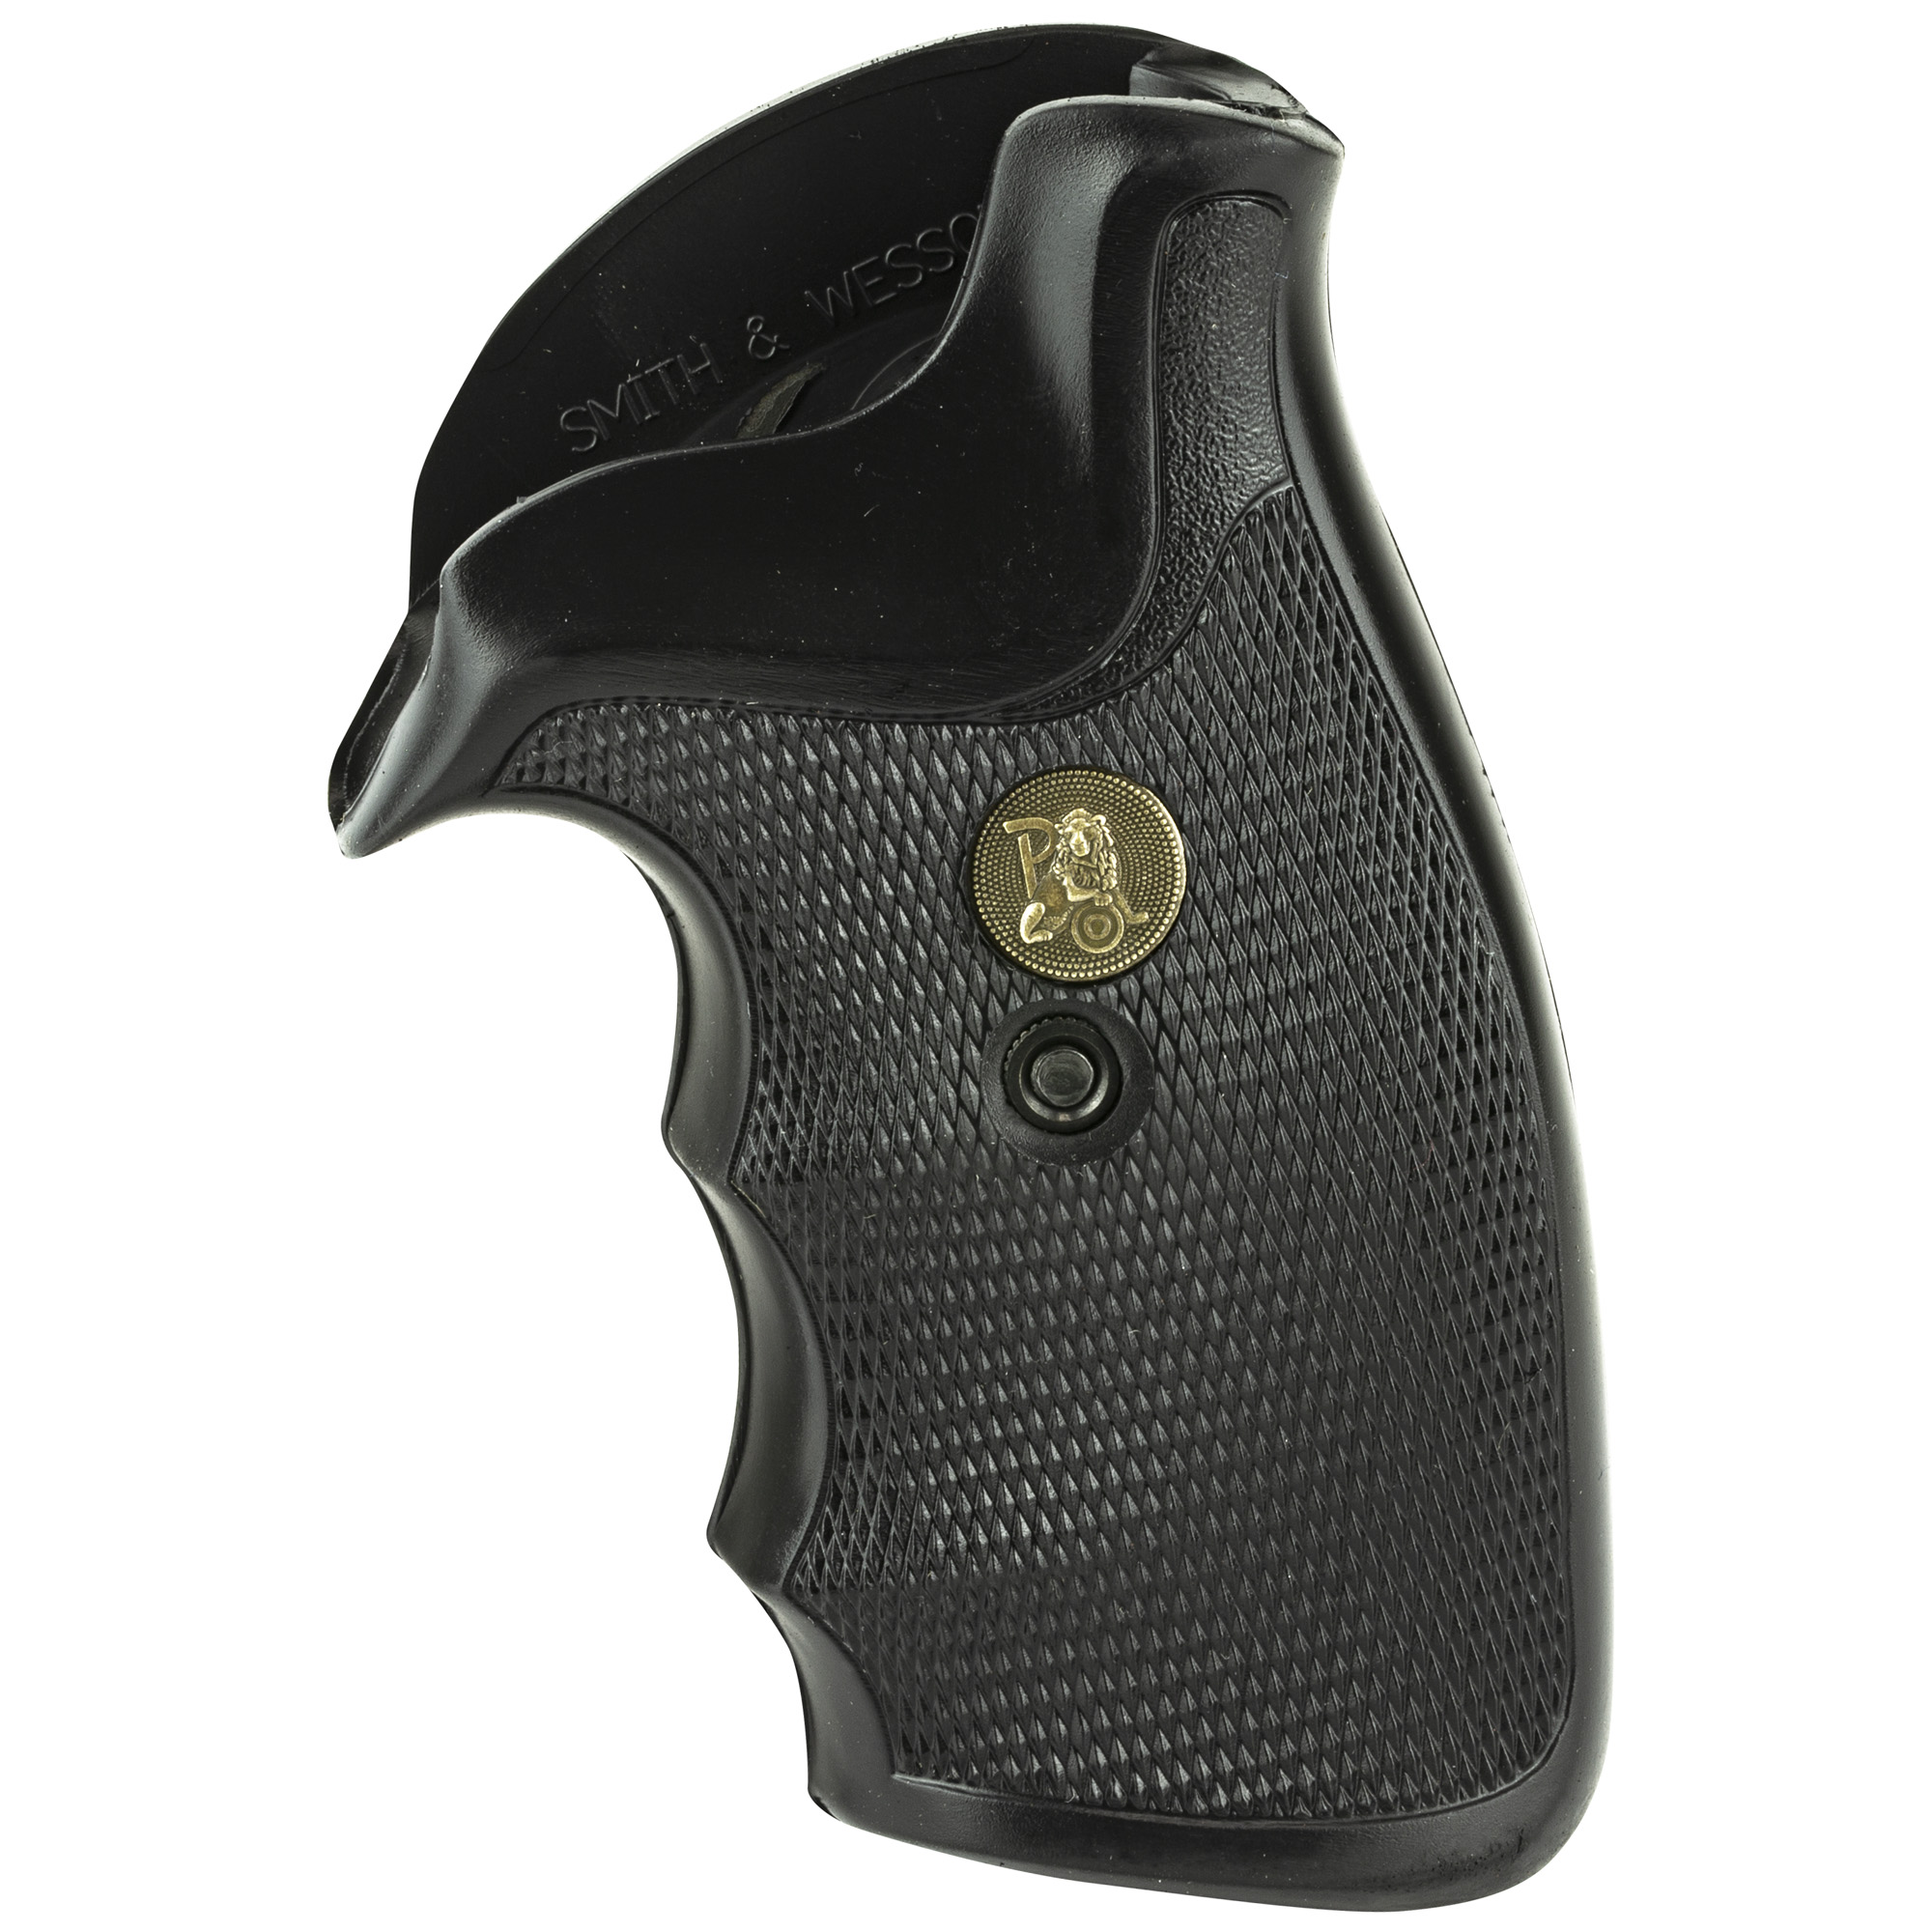 Pachmayr Gripper grips are made from a specially formulated rubber compound which optimizes control and recoil absorption. The finger groove style is popular for combat shooting and hunting. A covered backstrap and slight palm swell fills the hand but is not so large as to be uncomfortable. Gripper grips are fully checkered for appearance as well as for control.